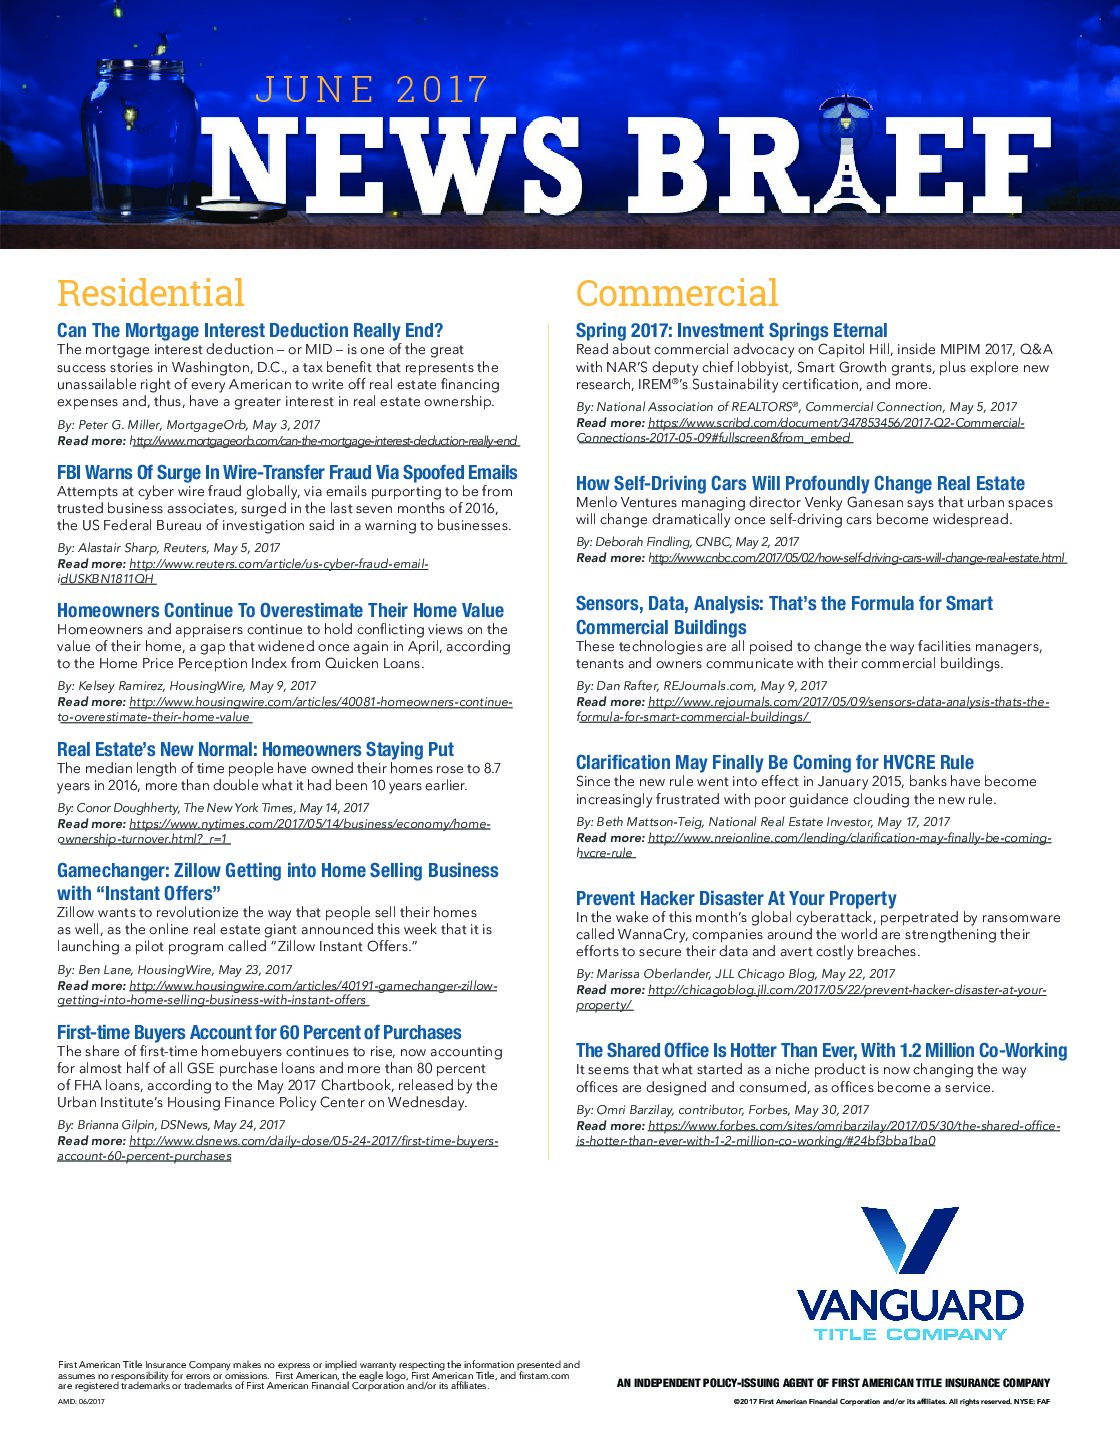 The June News Brief Has Arrived! - Vanguard Title Company